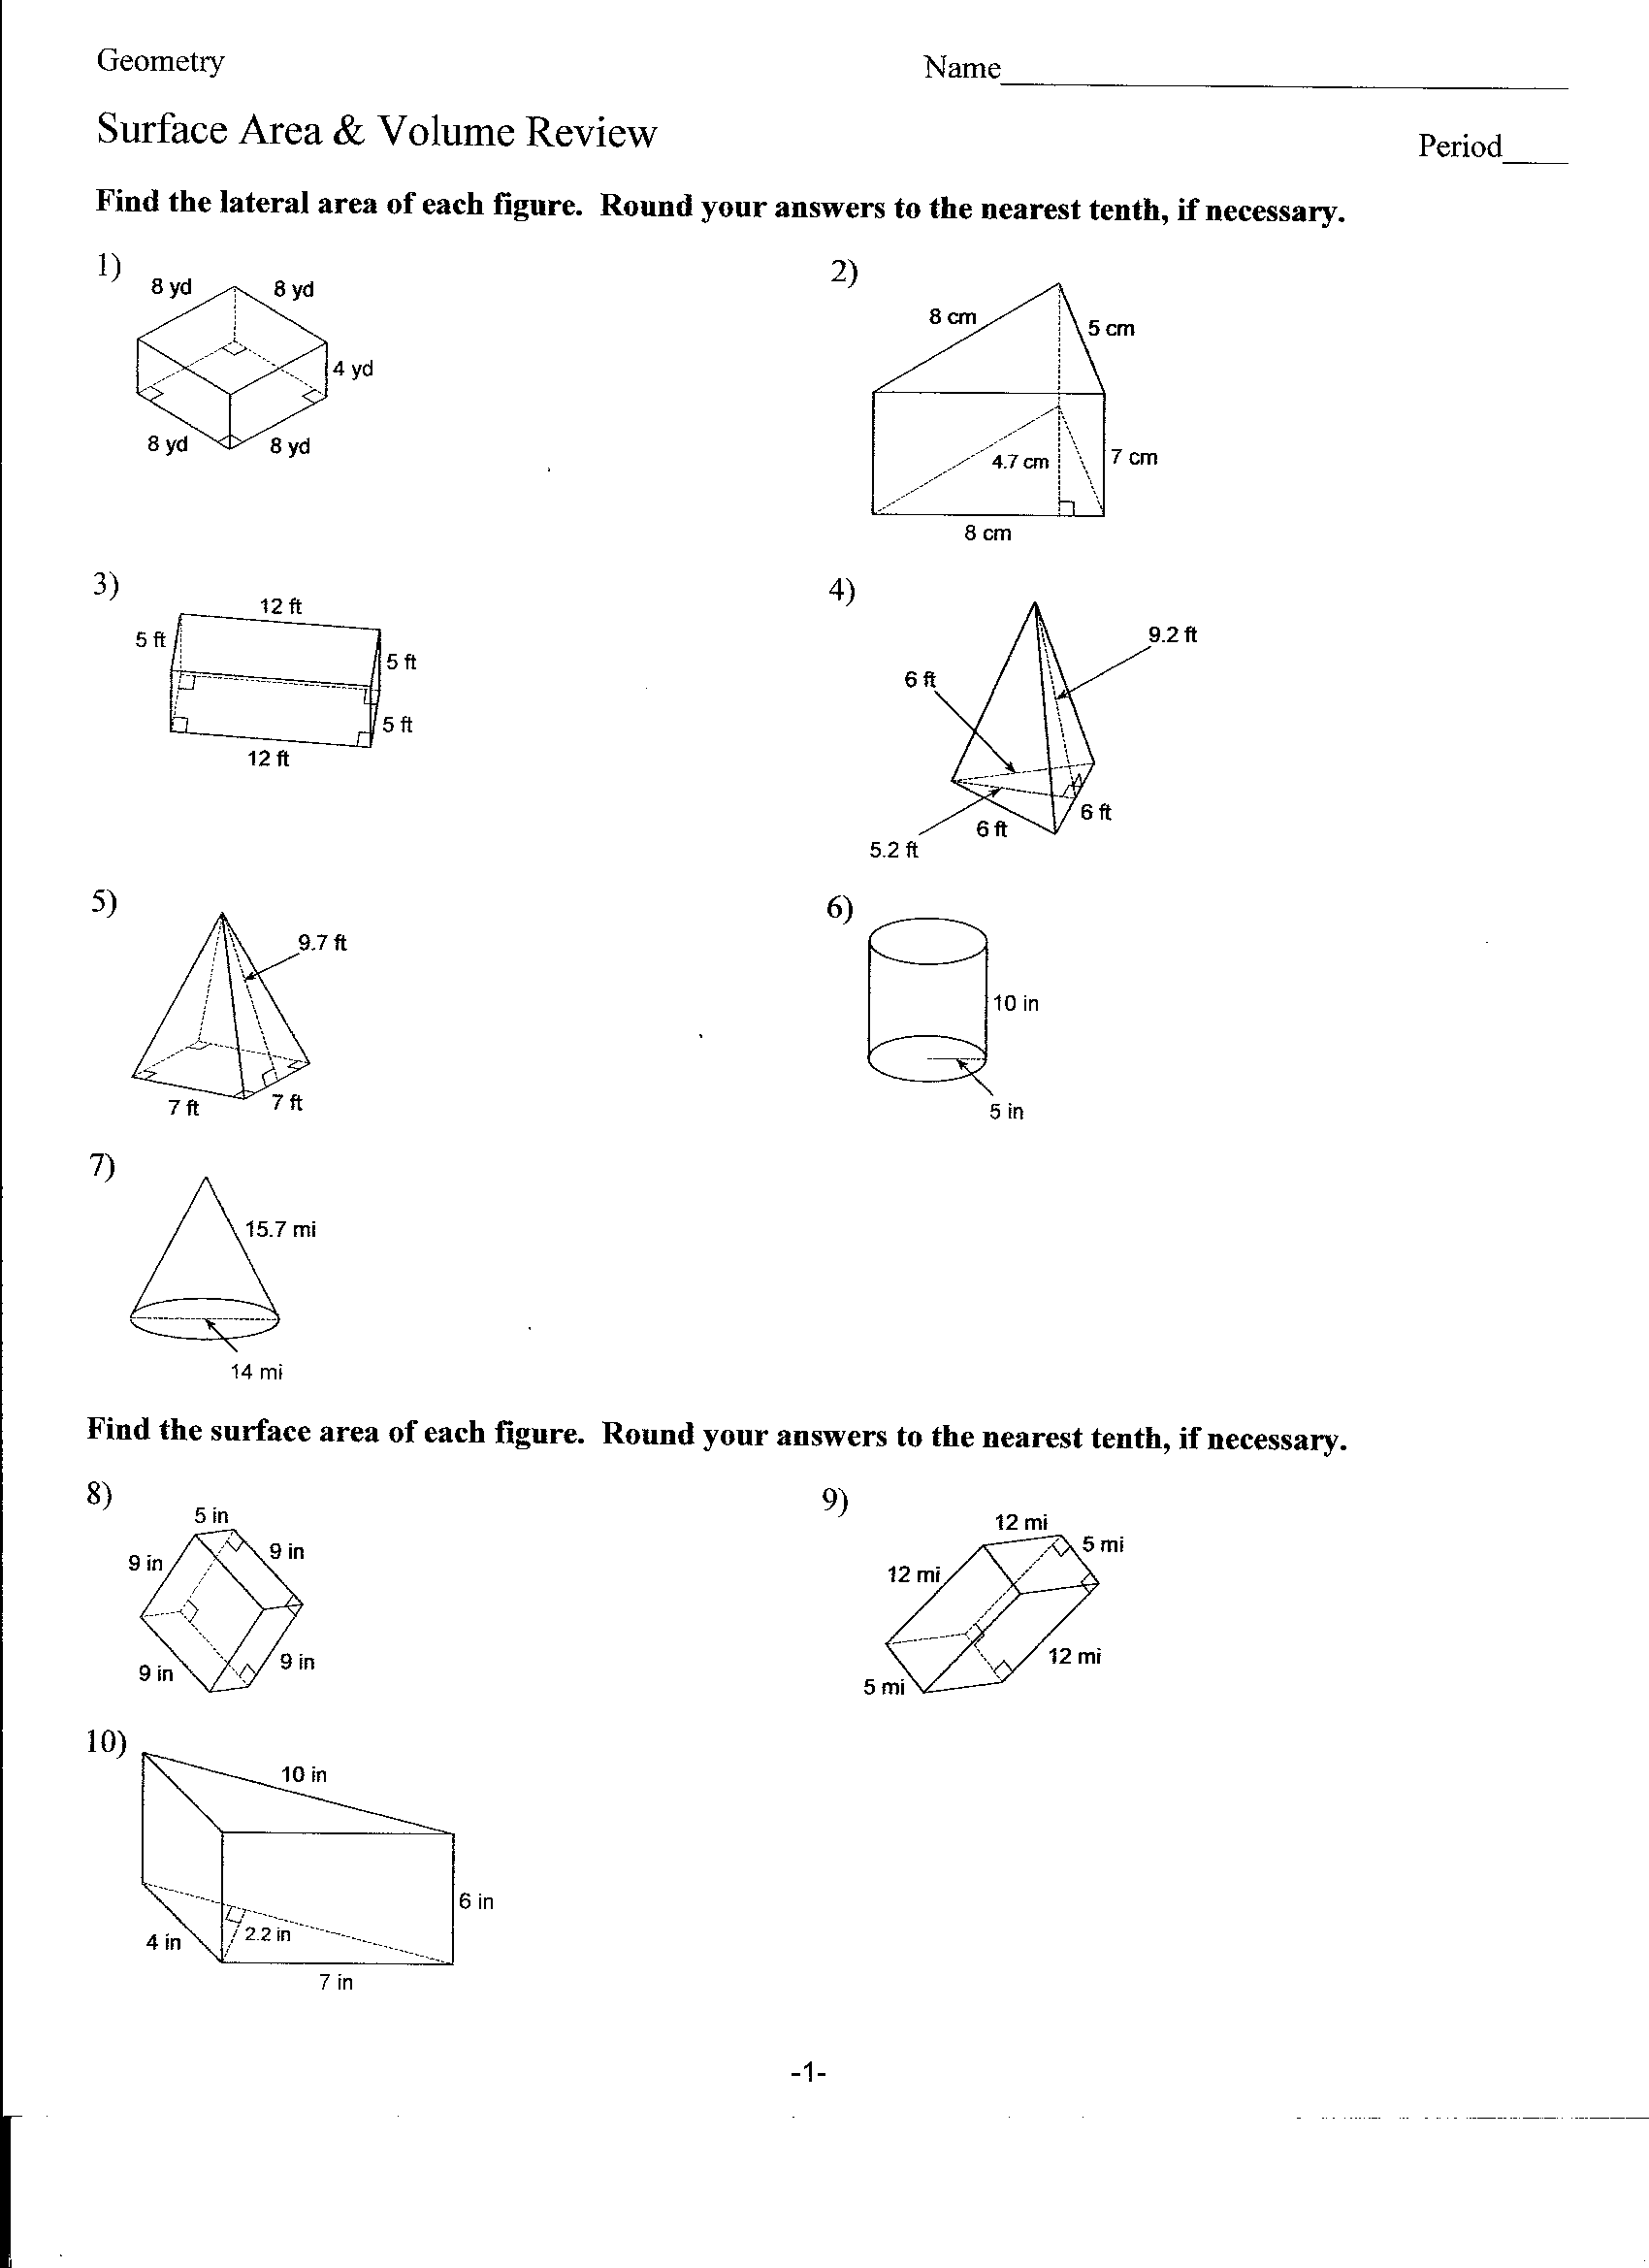 T Zoidal Prism Surface Area Worksheet